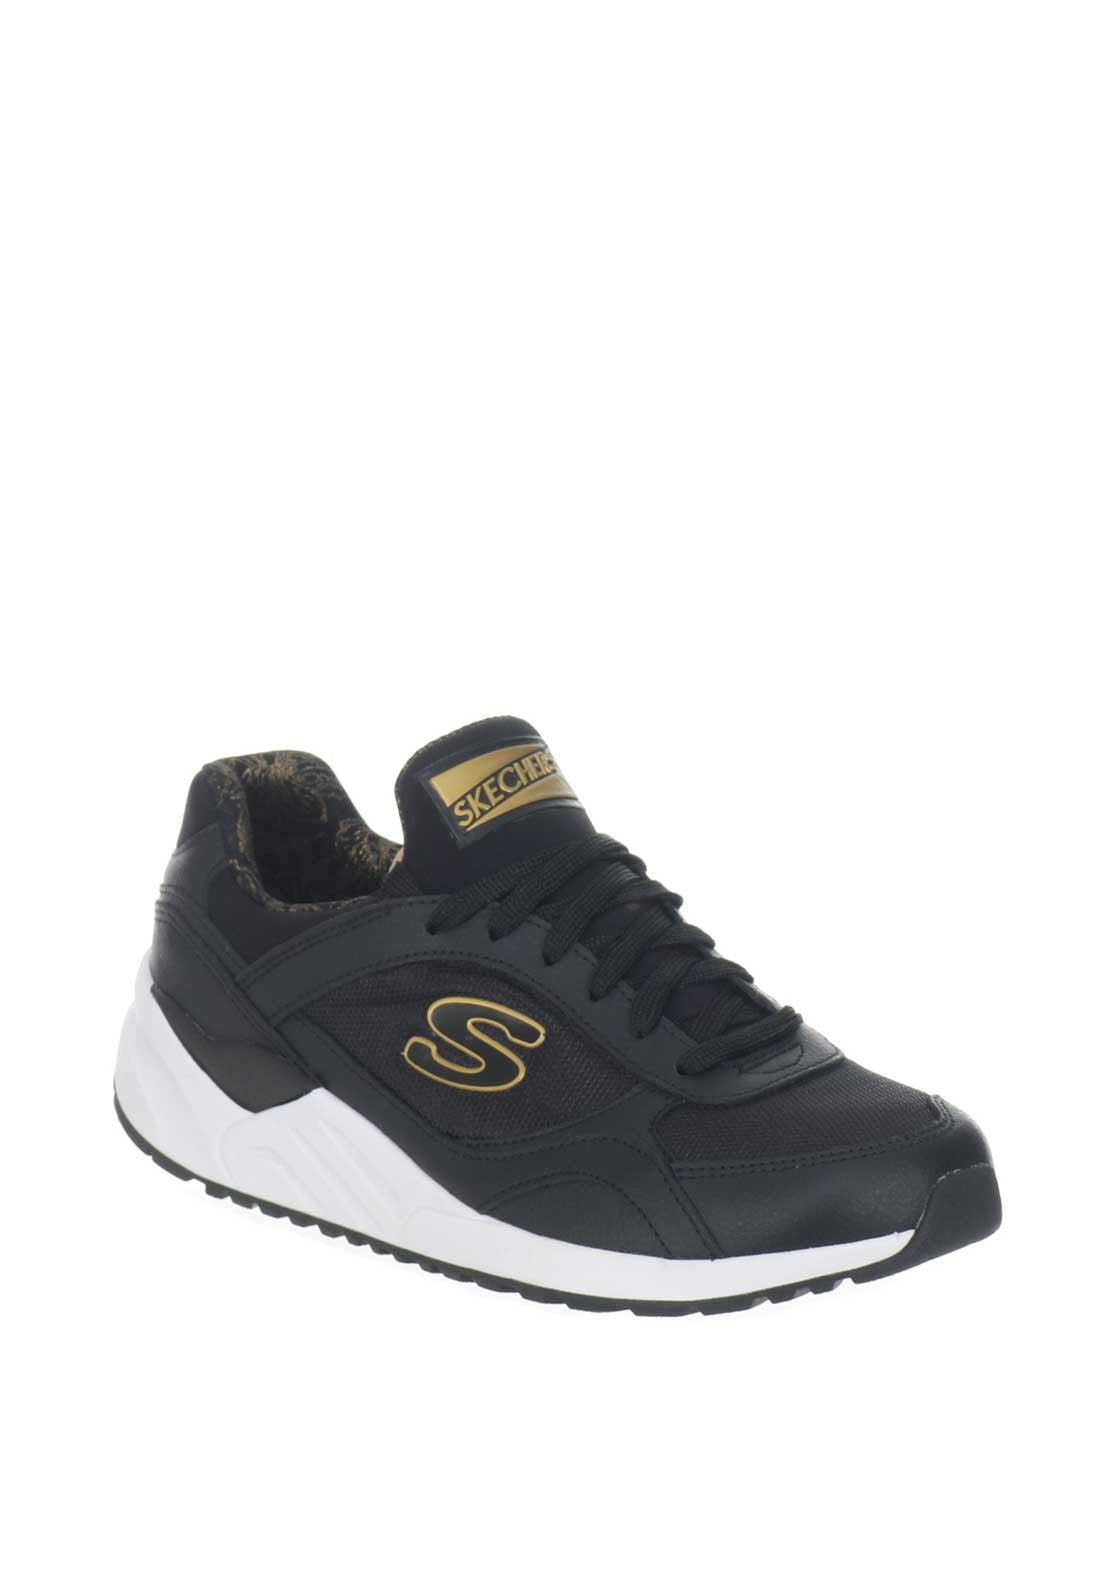 skechers out